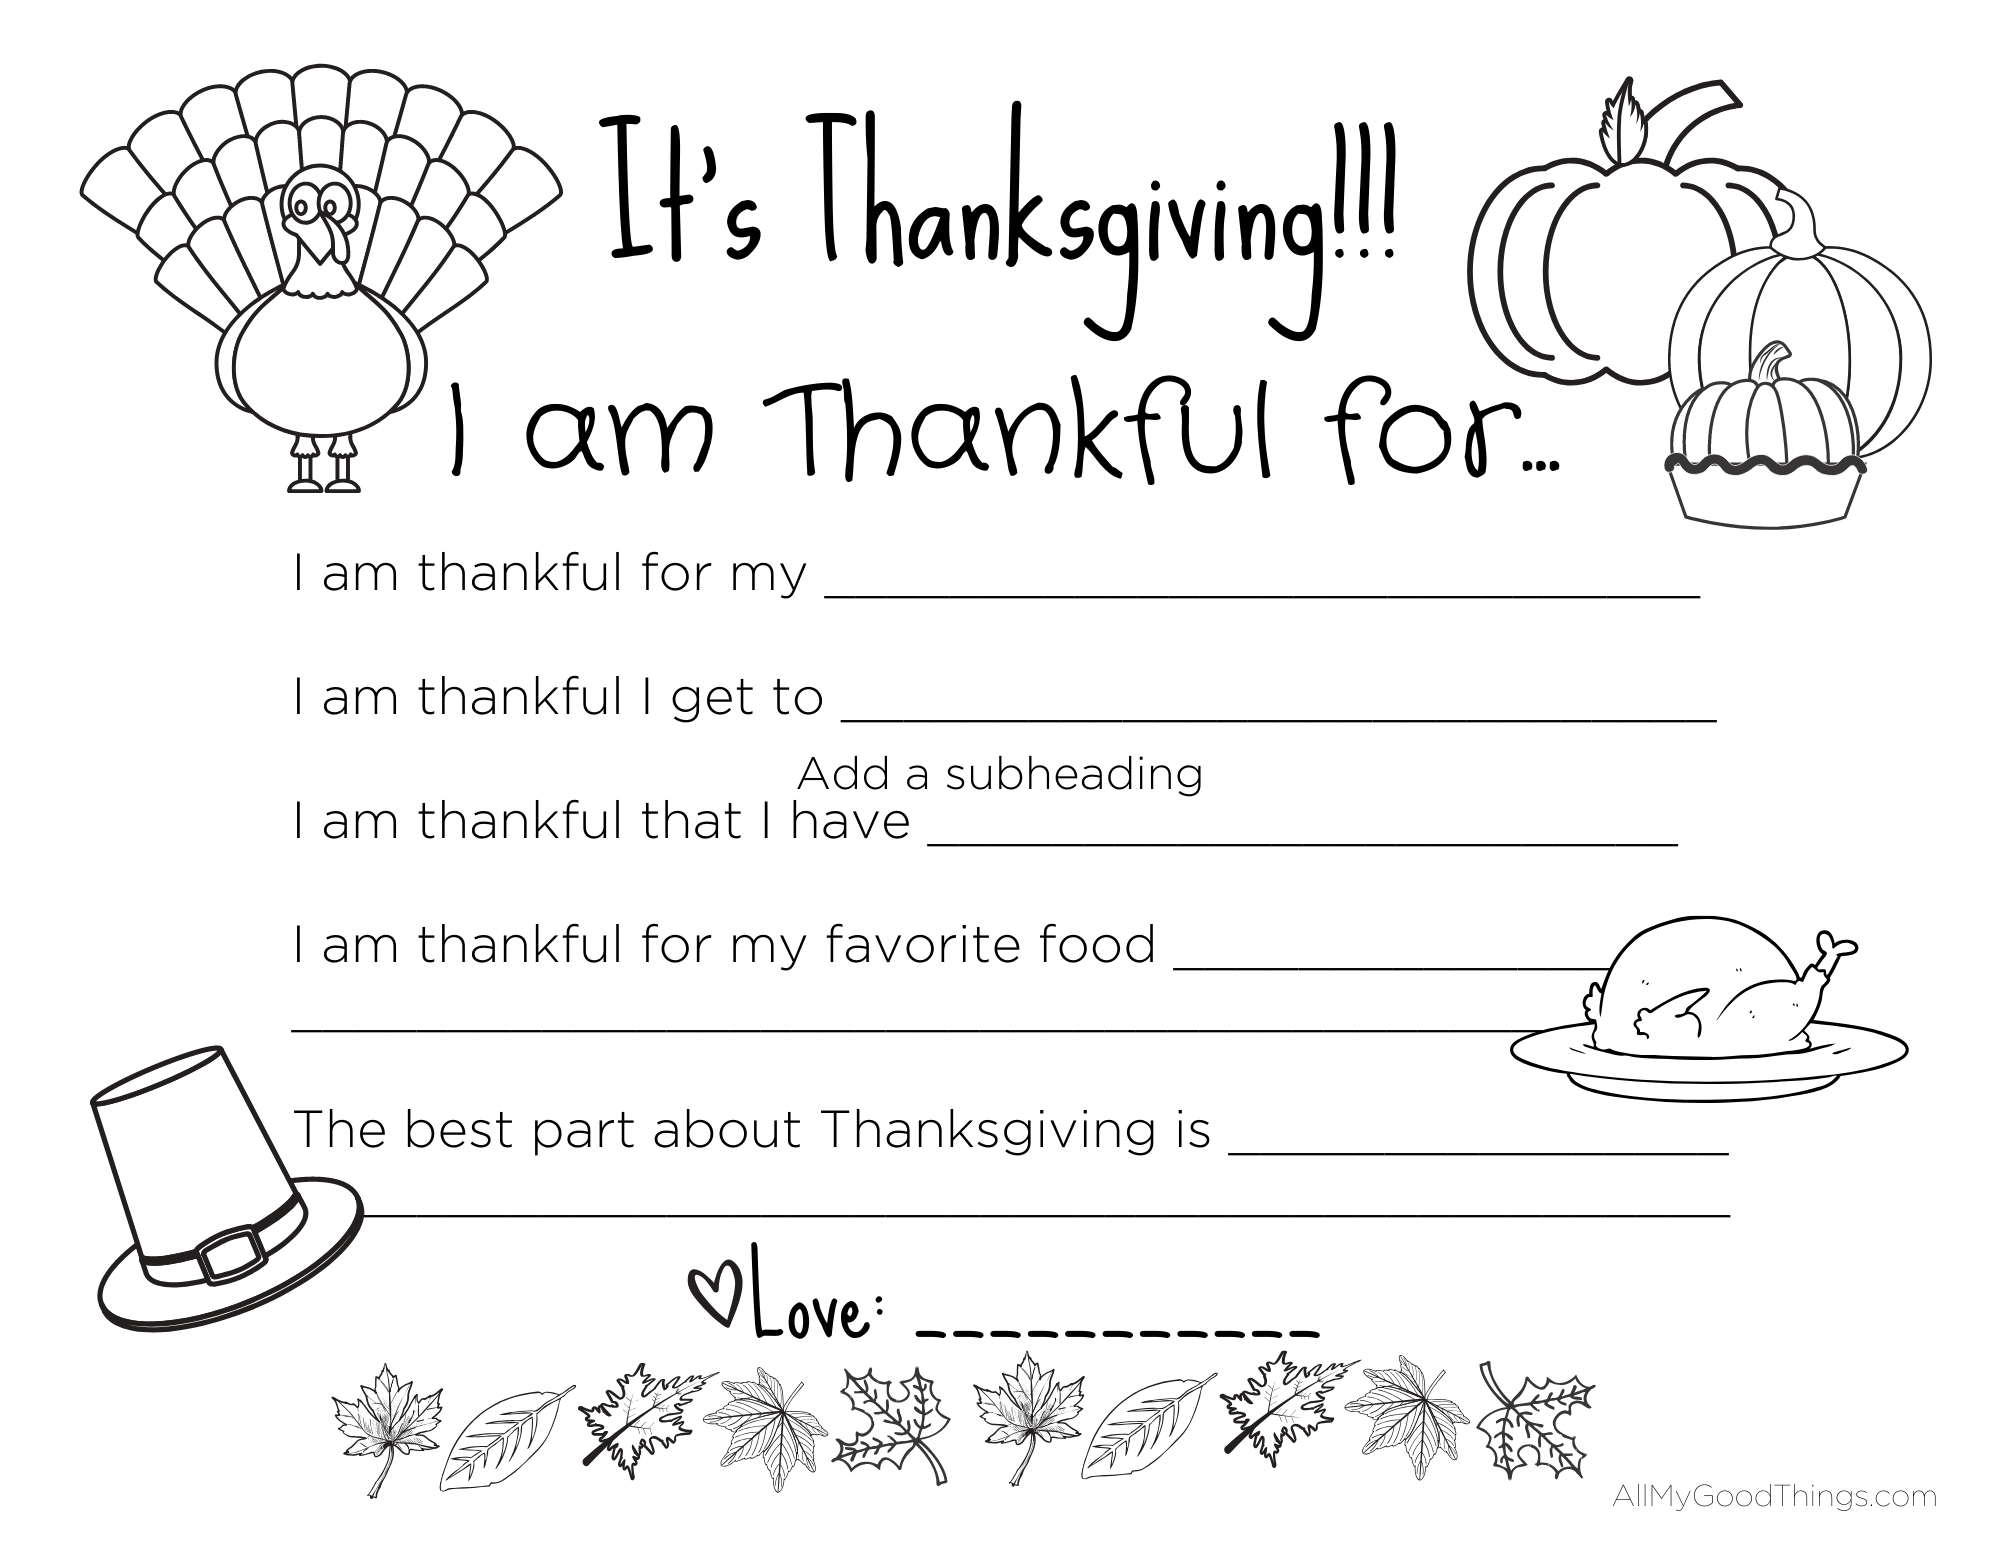 FREE Printable Thanksgiving Placemats for the Kids - All ...